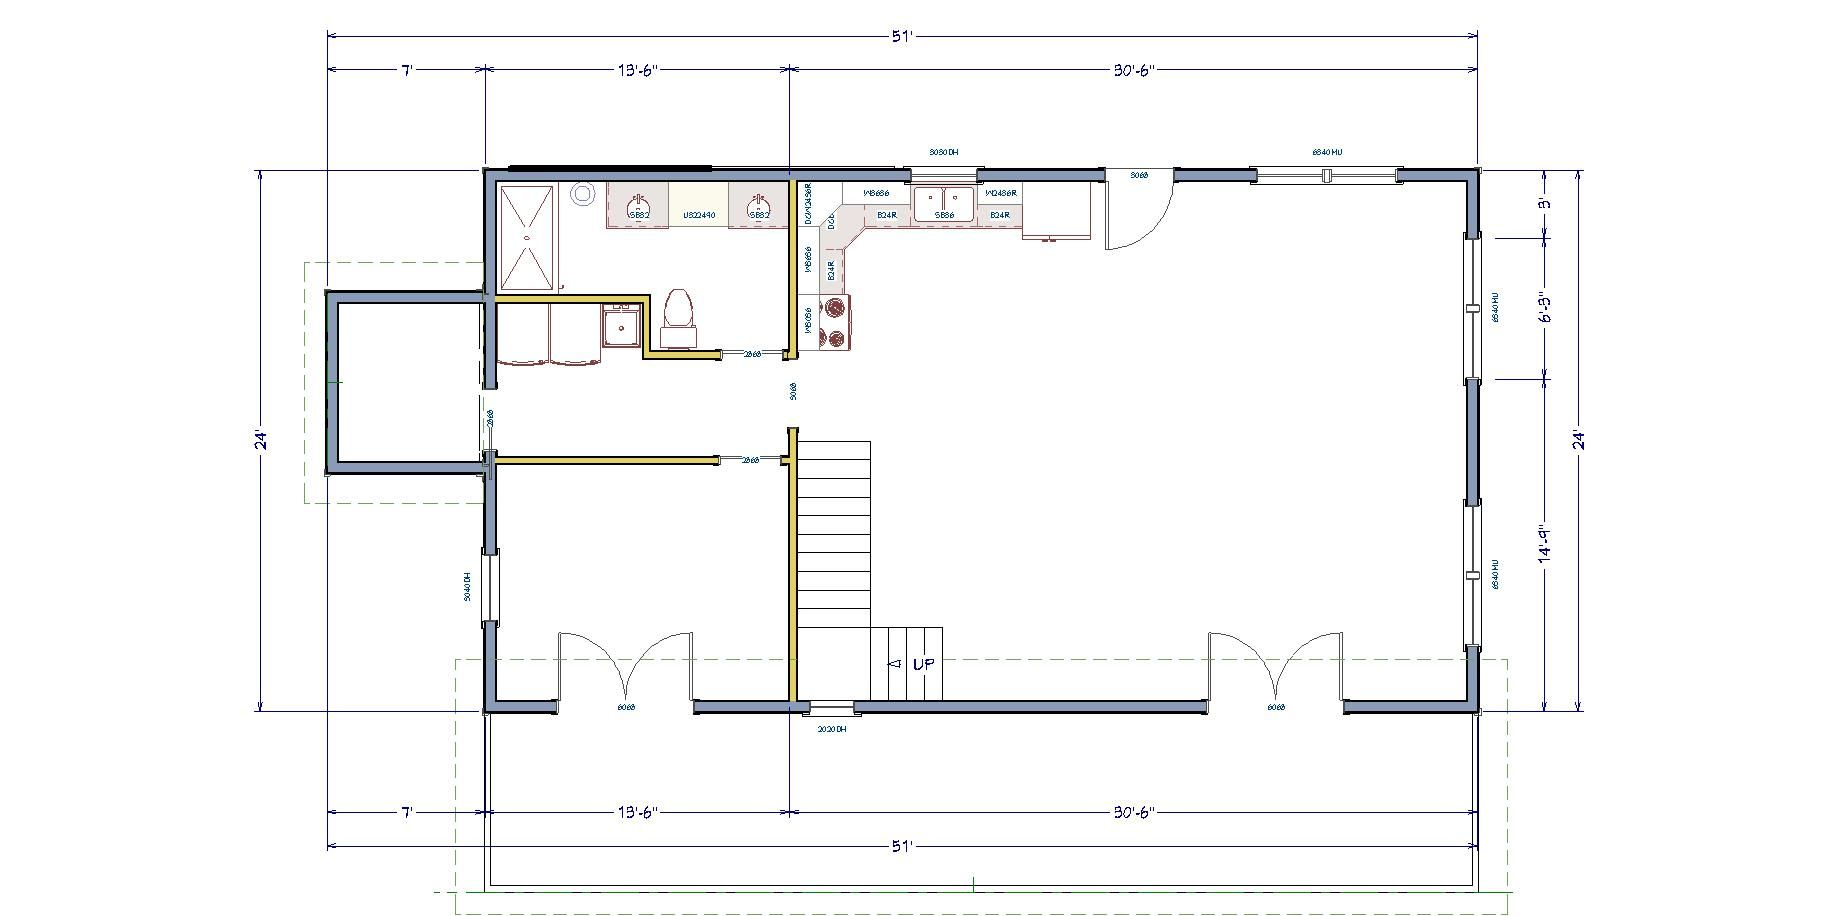 The simple house floor plan making the most of a small space for Piani di casa di campagna 1500 sq ft